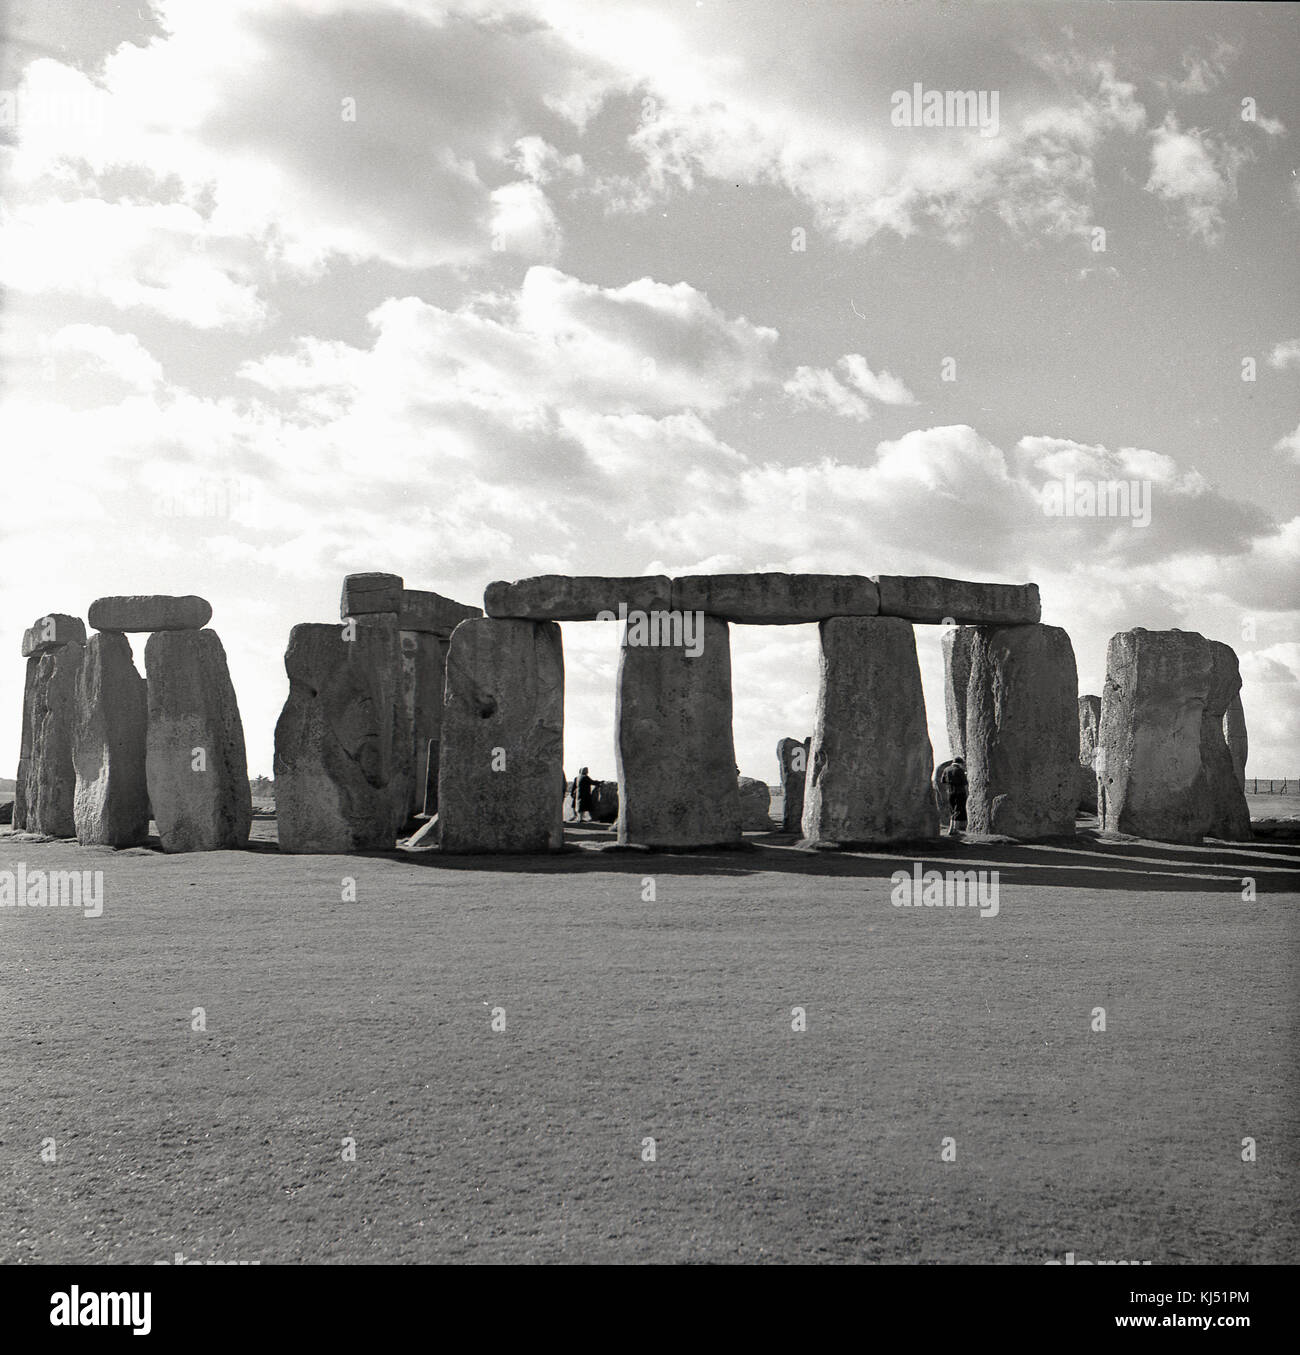 1950s, historical picture of the ancient burial ground of Stonehenge near Salisbury, Wiltshire, England, UK. At - Stock Image